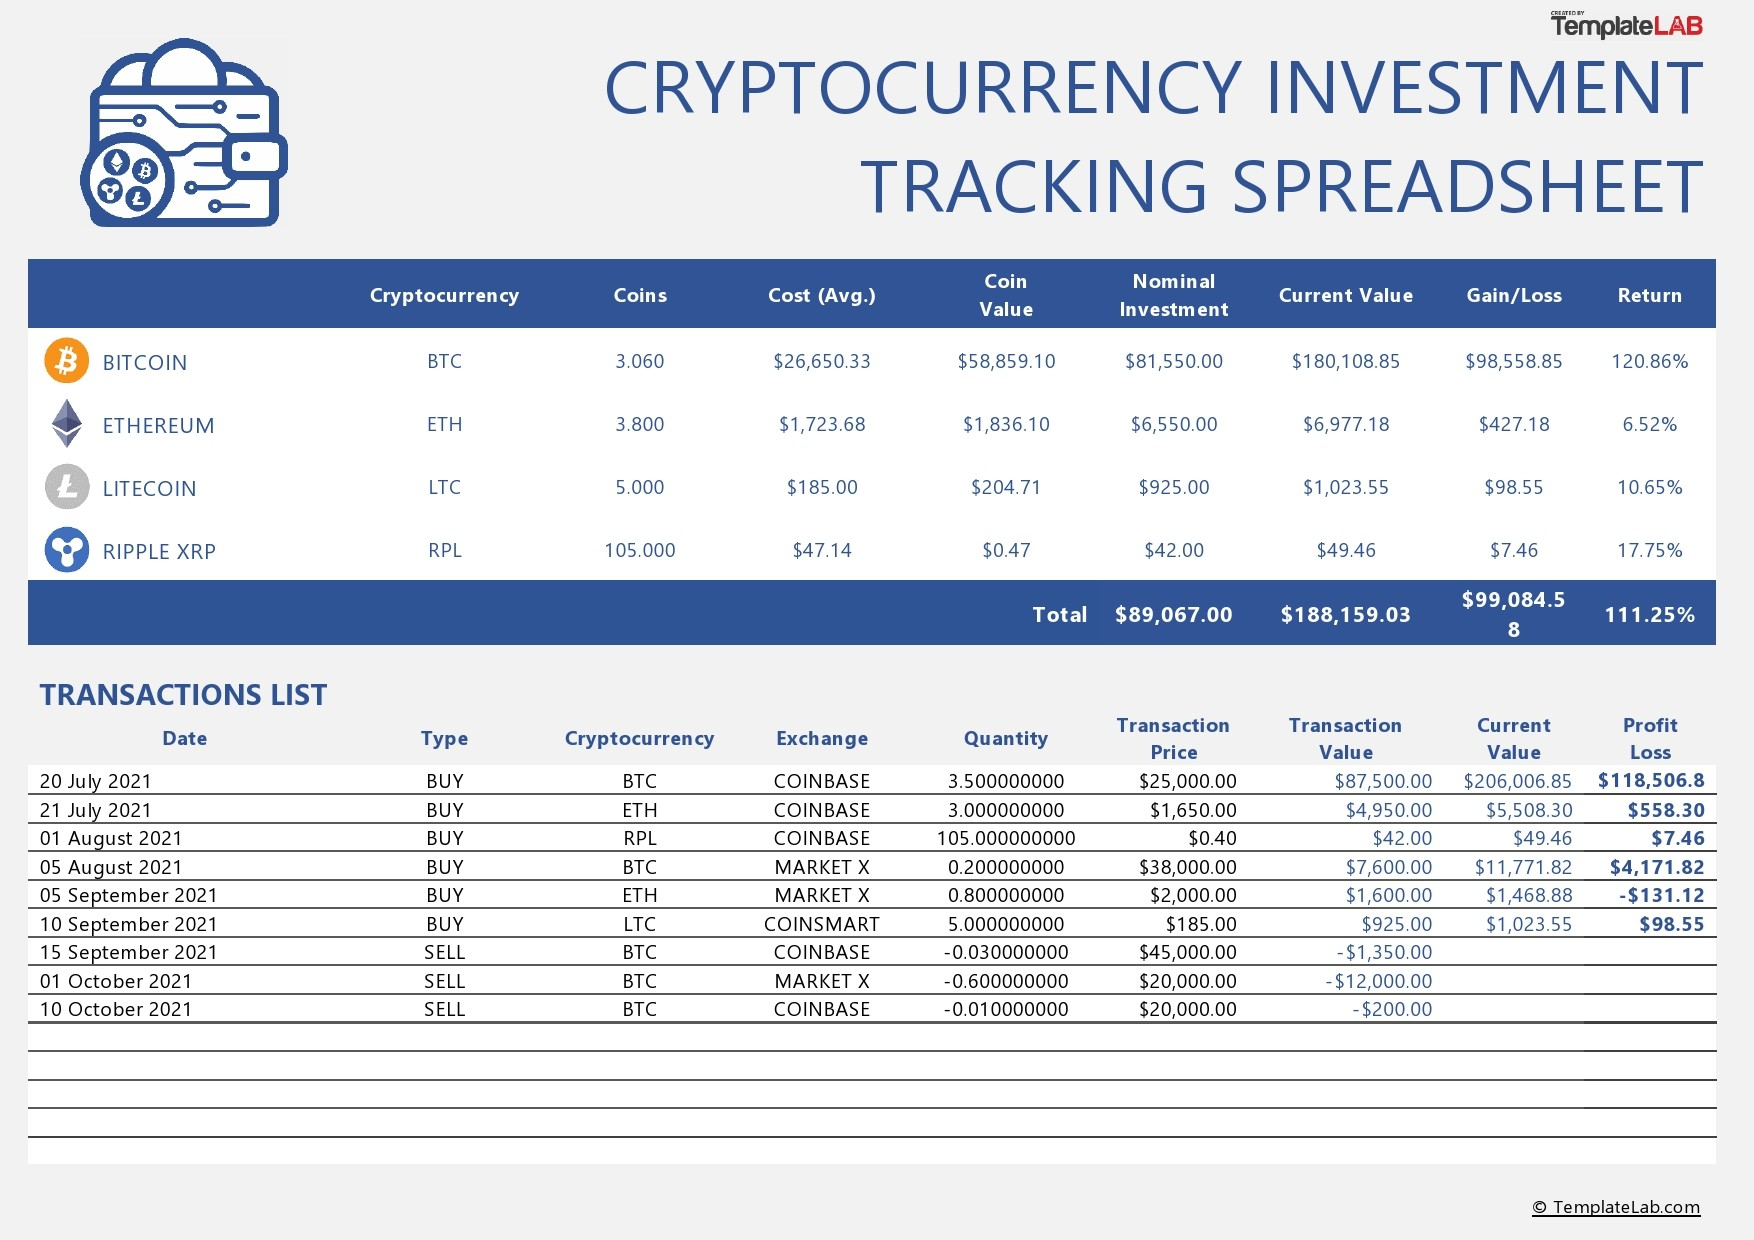 Free Cryptocurrency Investment Tracking Spreadsheet - TemplateLab.com